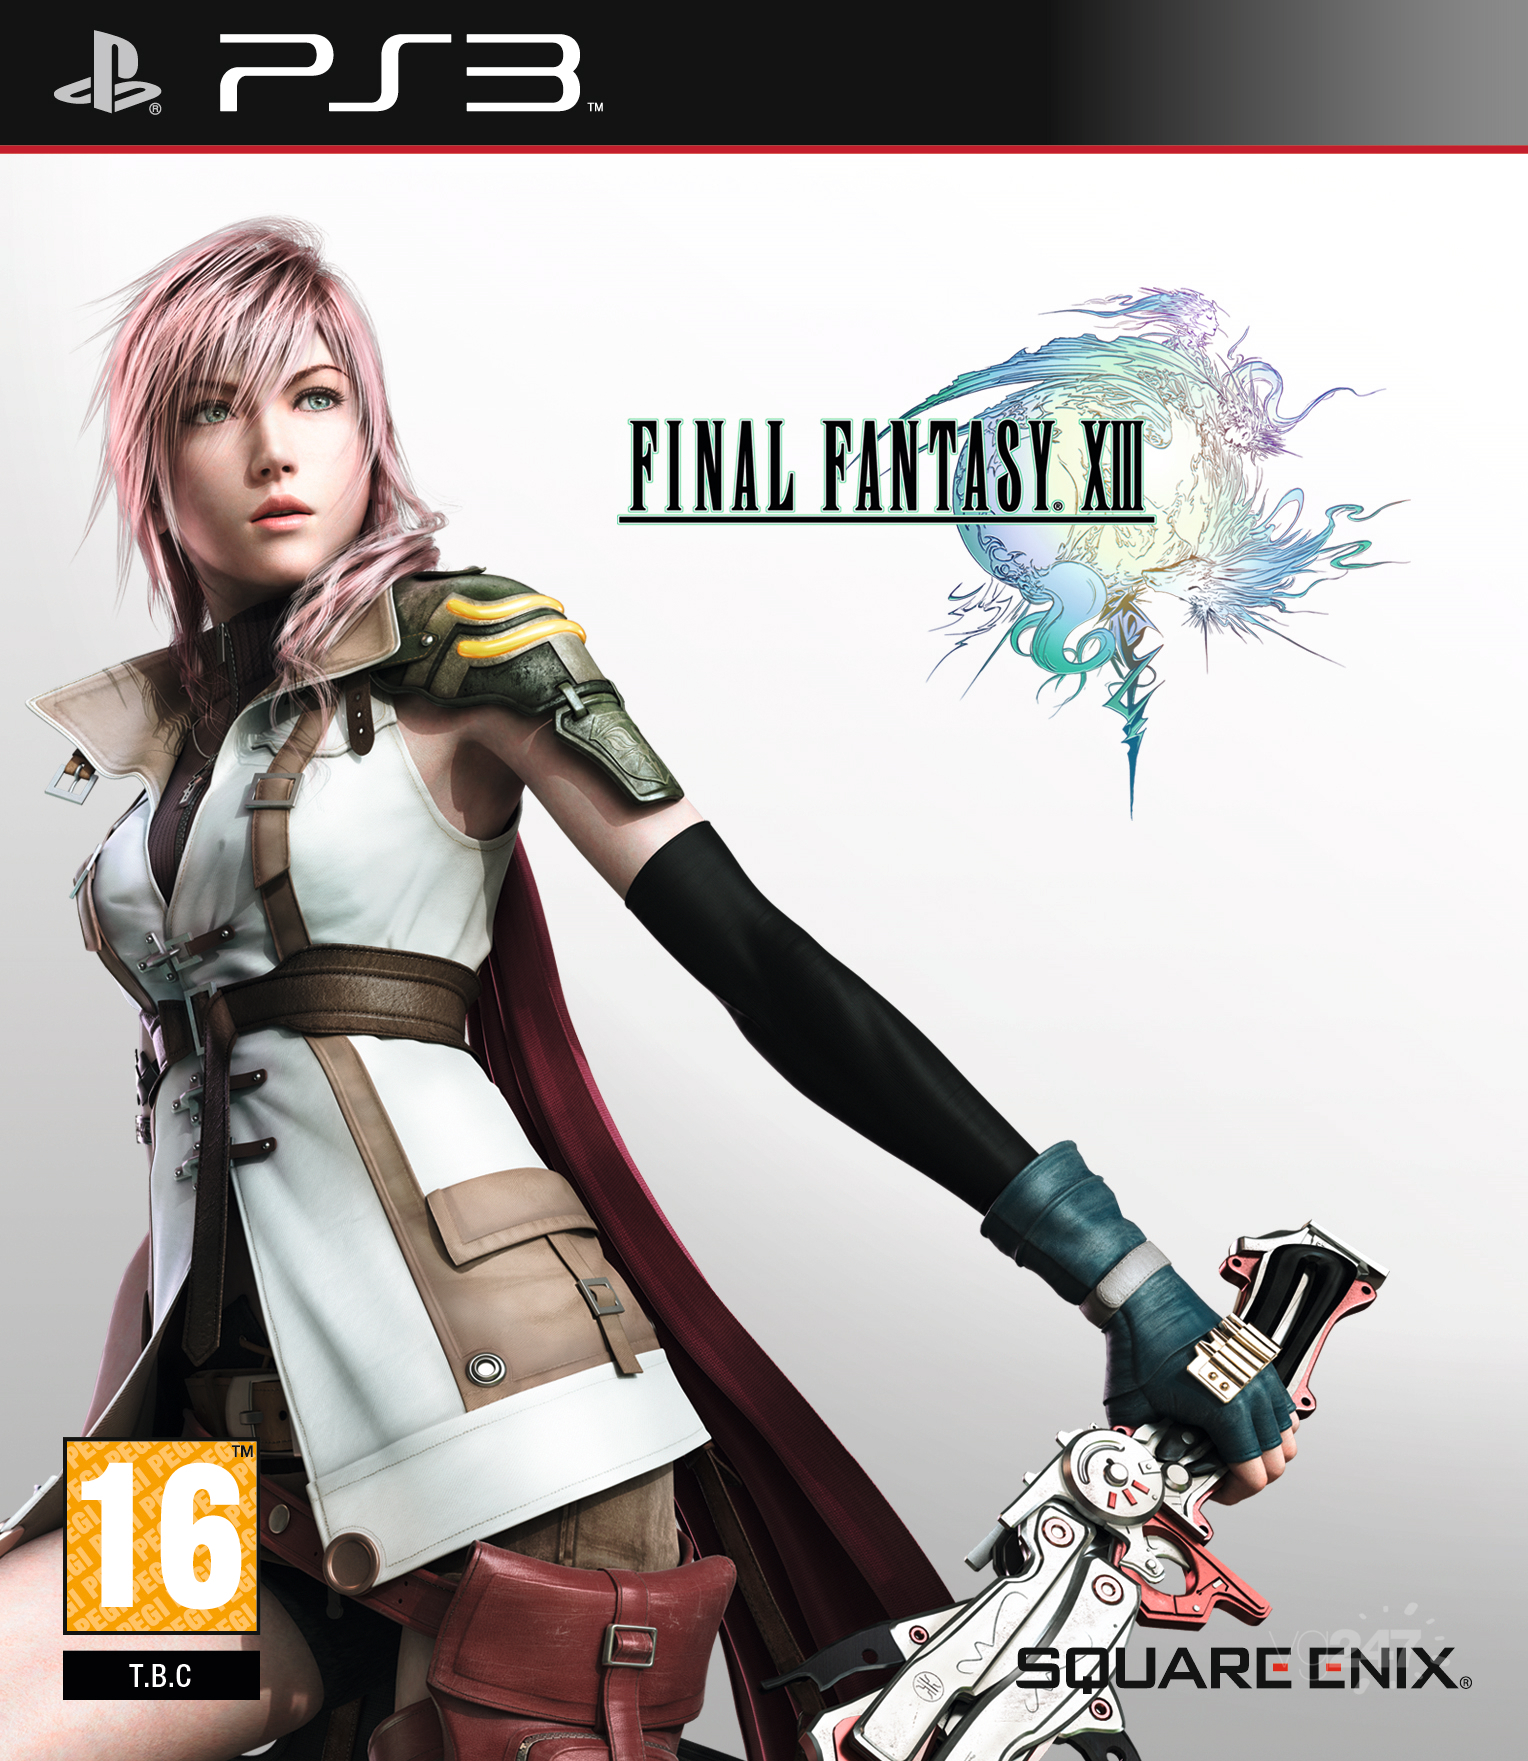 Japan thinks ffxiii sucks